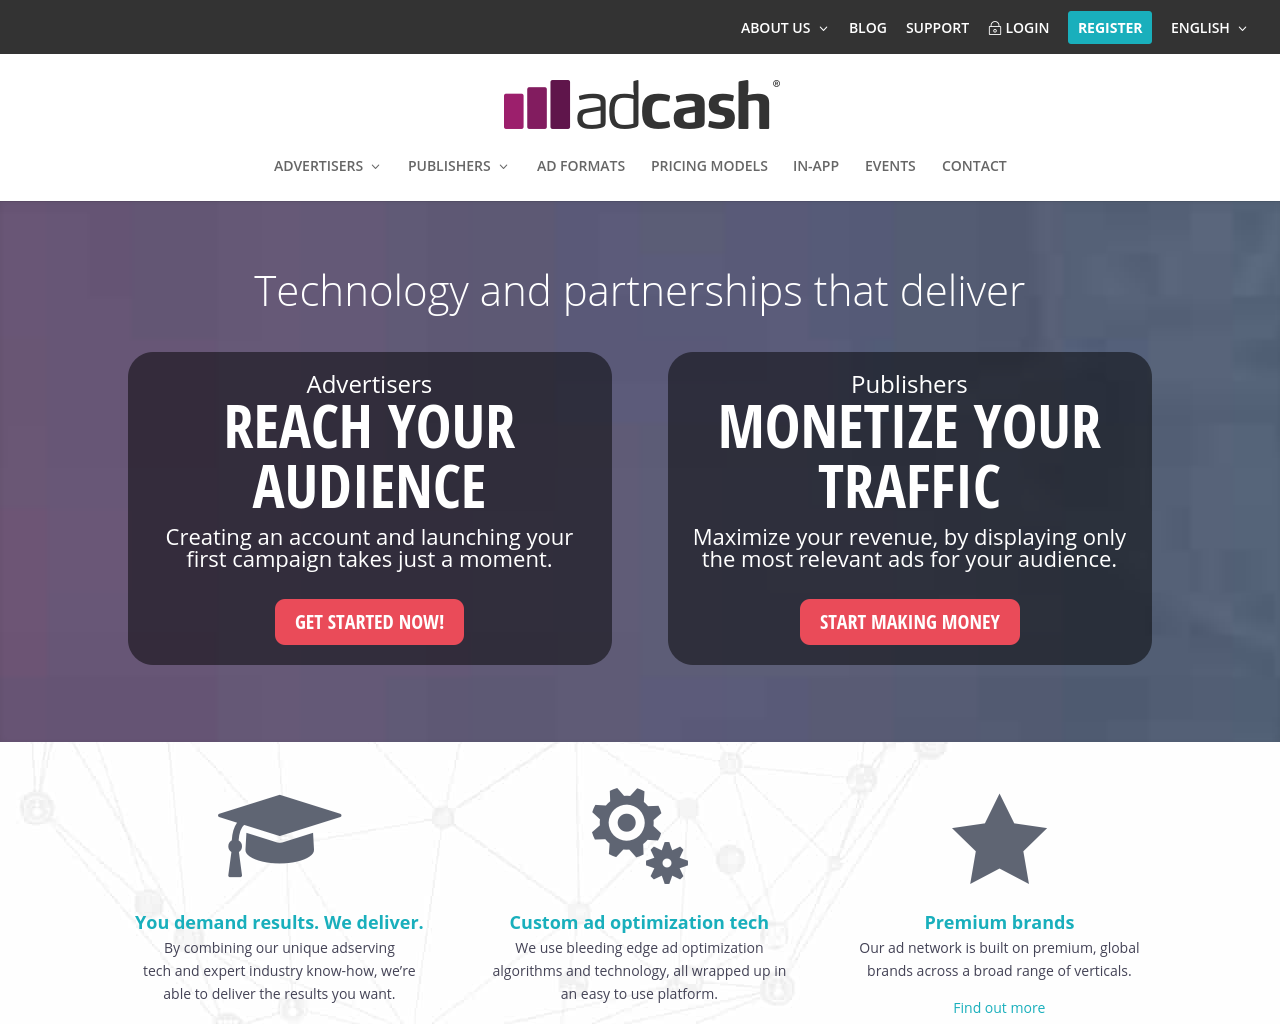 AdCash-Advertising-Reviews-Pricing